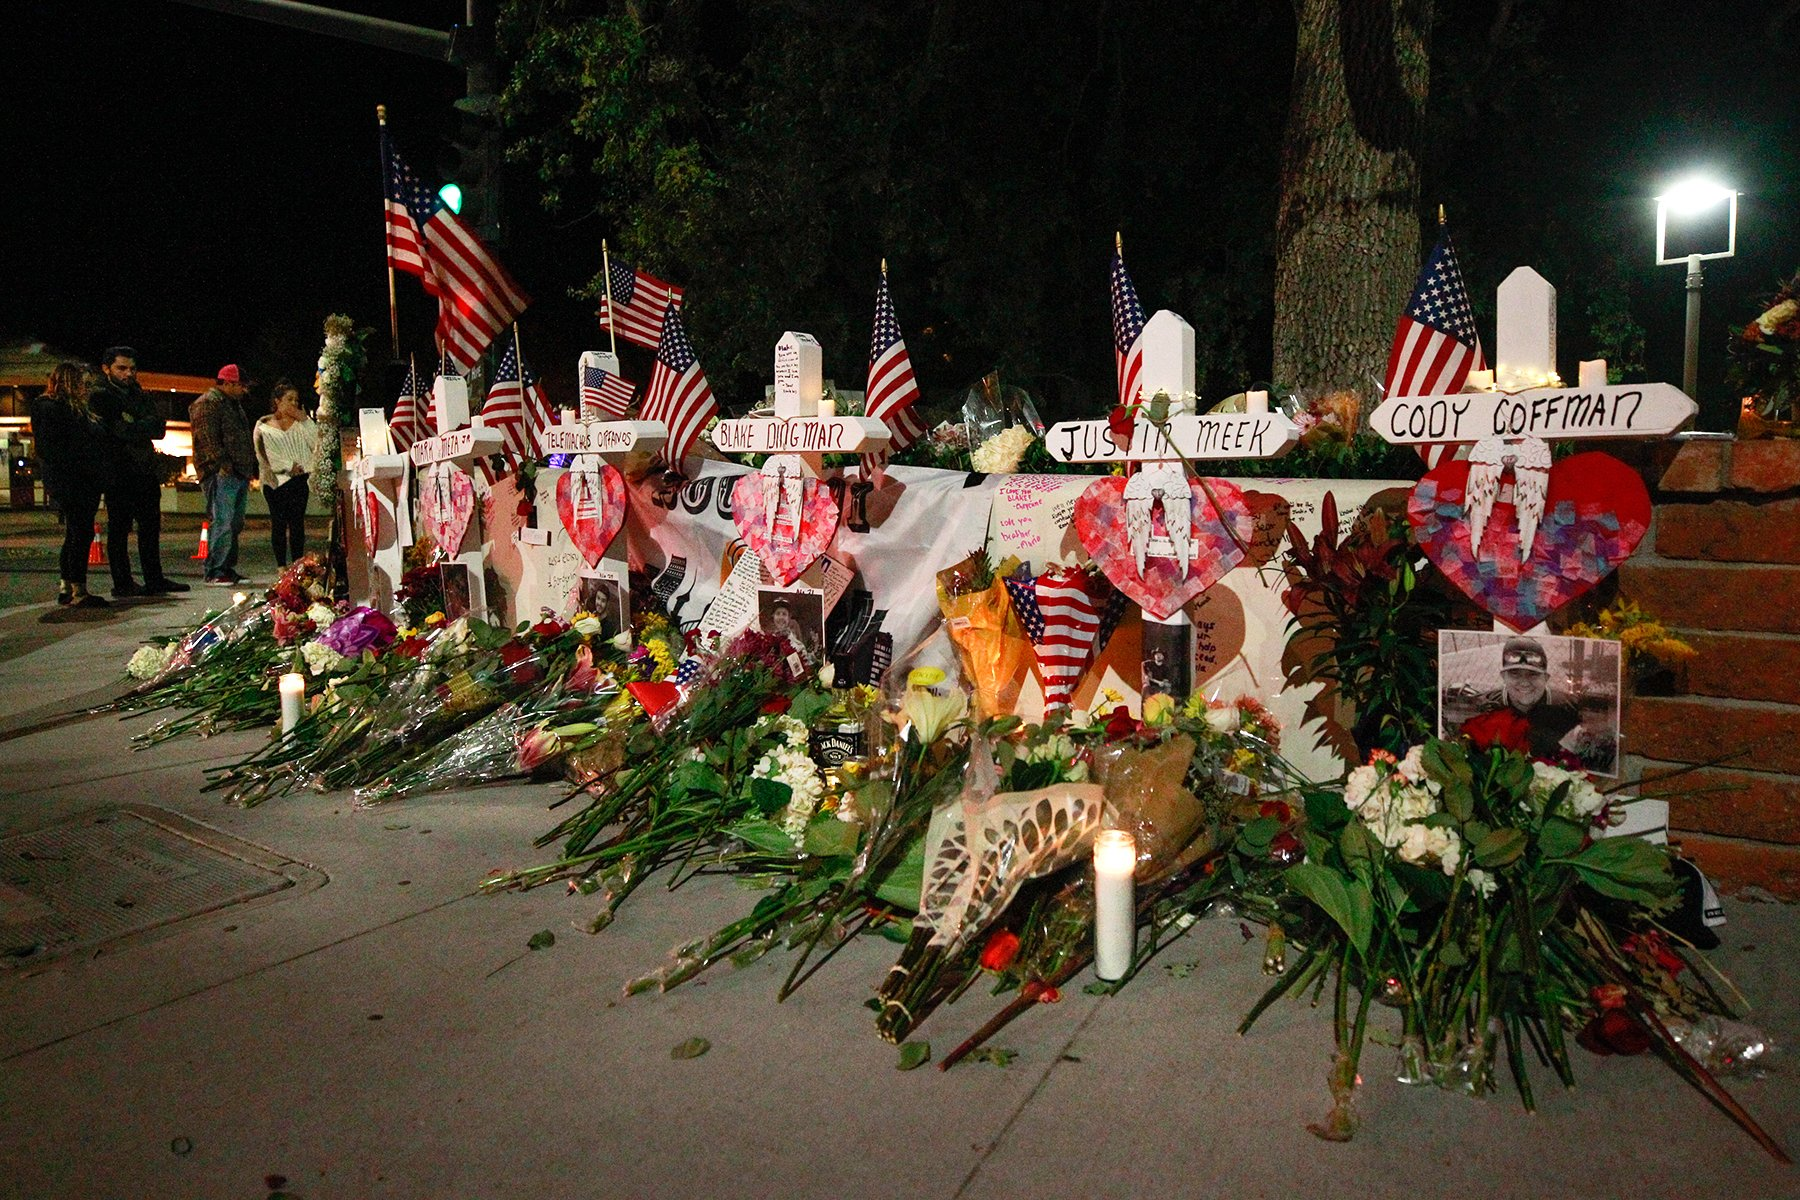 I'm told a vigil for the #Borderline shooting victims is planned for 8 p.m. Tues., Nov. 13 at Pepper Tree Playfield (3720 Old Conejo Road) in Newbury Park.  #TO12 #TOstrong Photo by @acornrichard https://t.co/Xf7x90SjhW